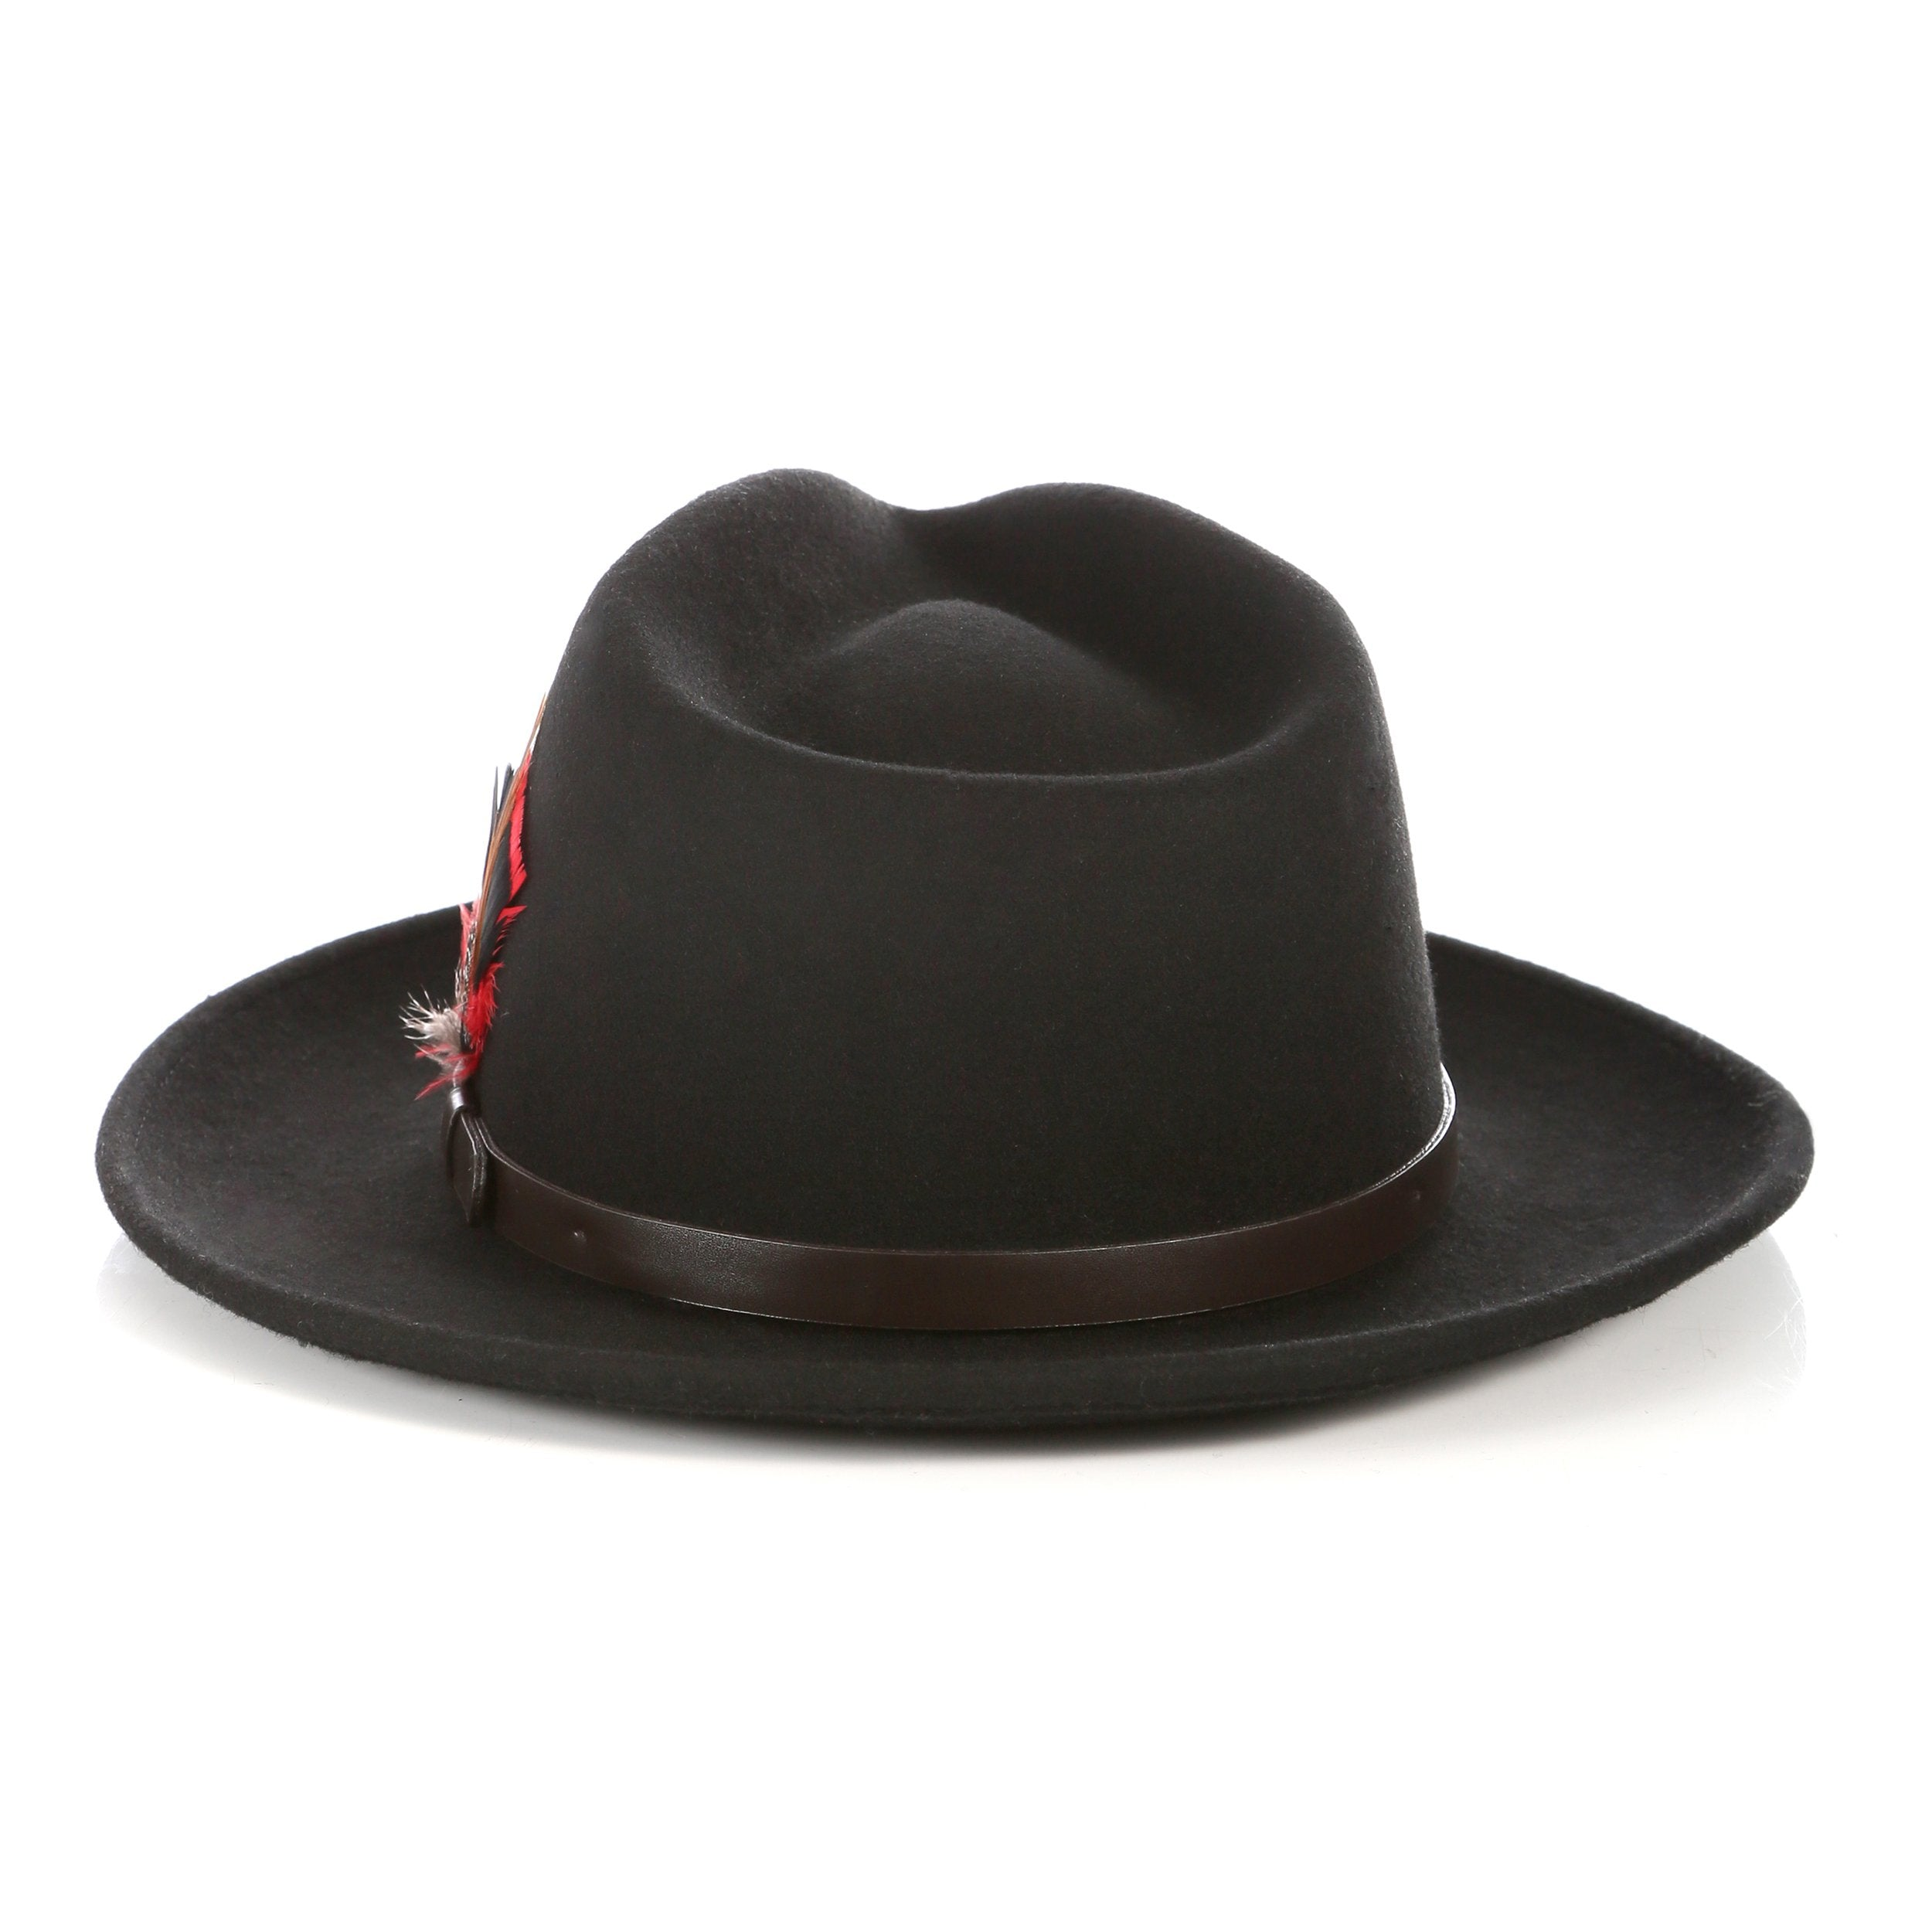 Crushable Black Fedora Hat with Leather Band - Giorgio's Menswear